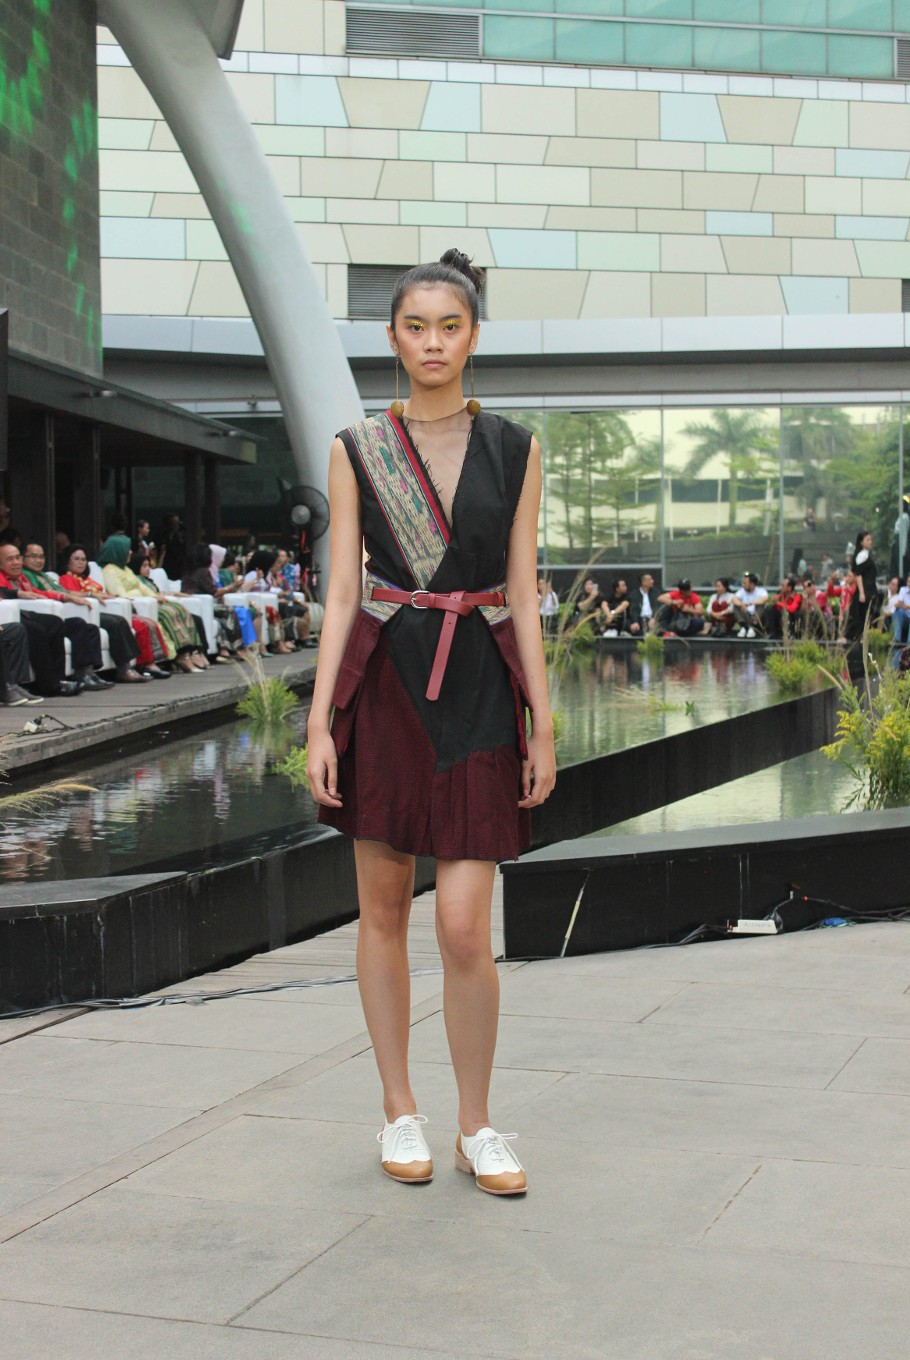 A model poses in a dress from the Madeind x Billy Tjong ready to wear collection.